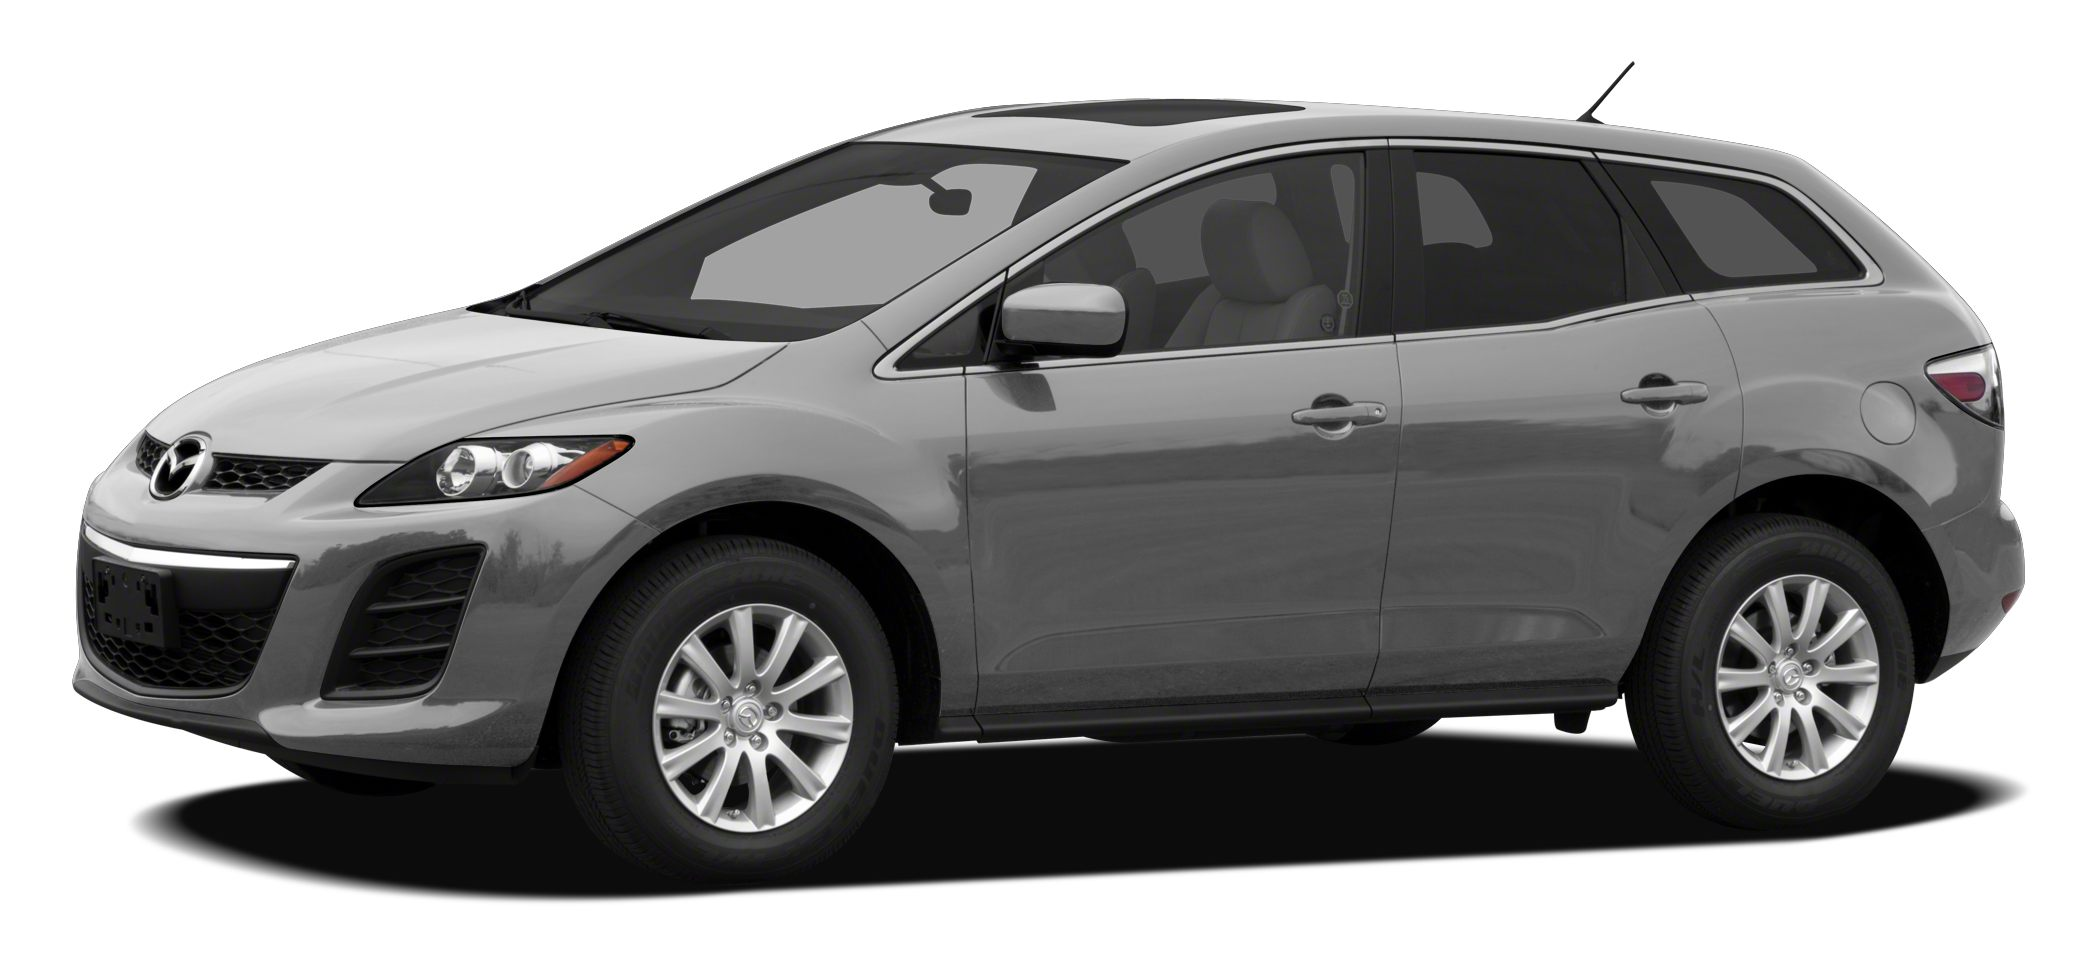 2012 Mazda CX-7 i Sport  COME SEE THE DIFFERENCE AT TAJ AUTO MALL WE SELL OUR VEHICLES AT